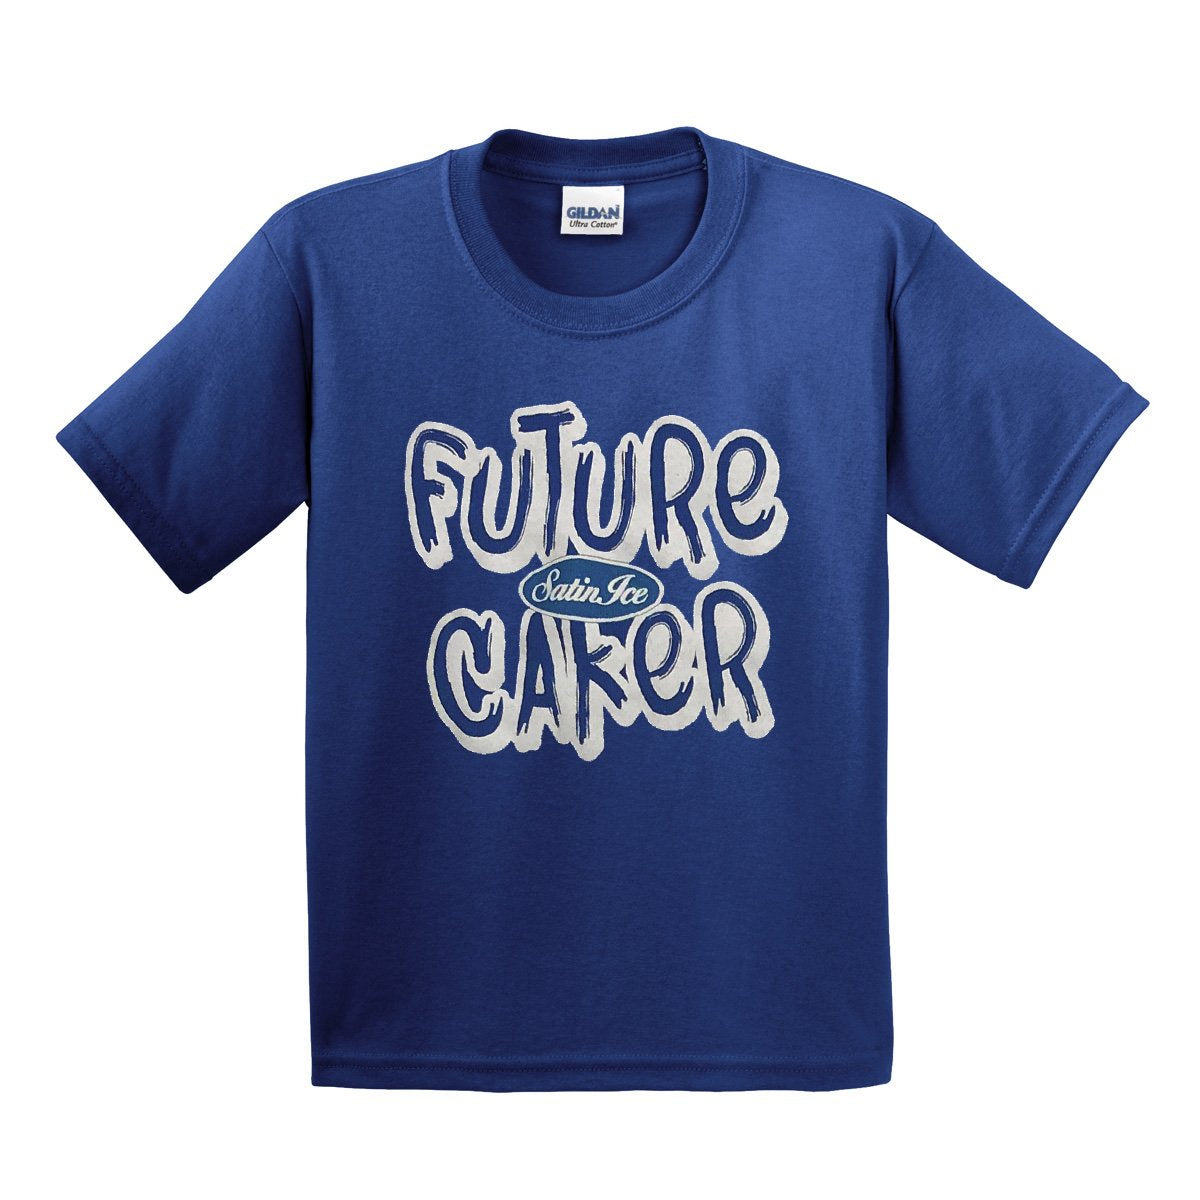 "Satin Ice ""Future Caker"" Kids T-Shirt • Blue - Satin Ice"